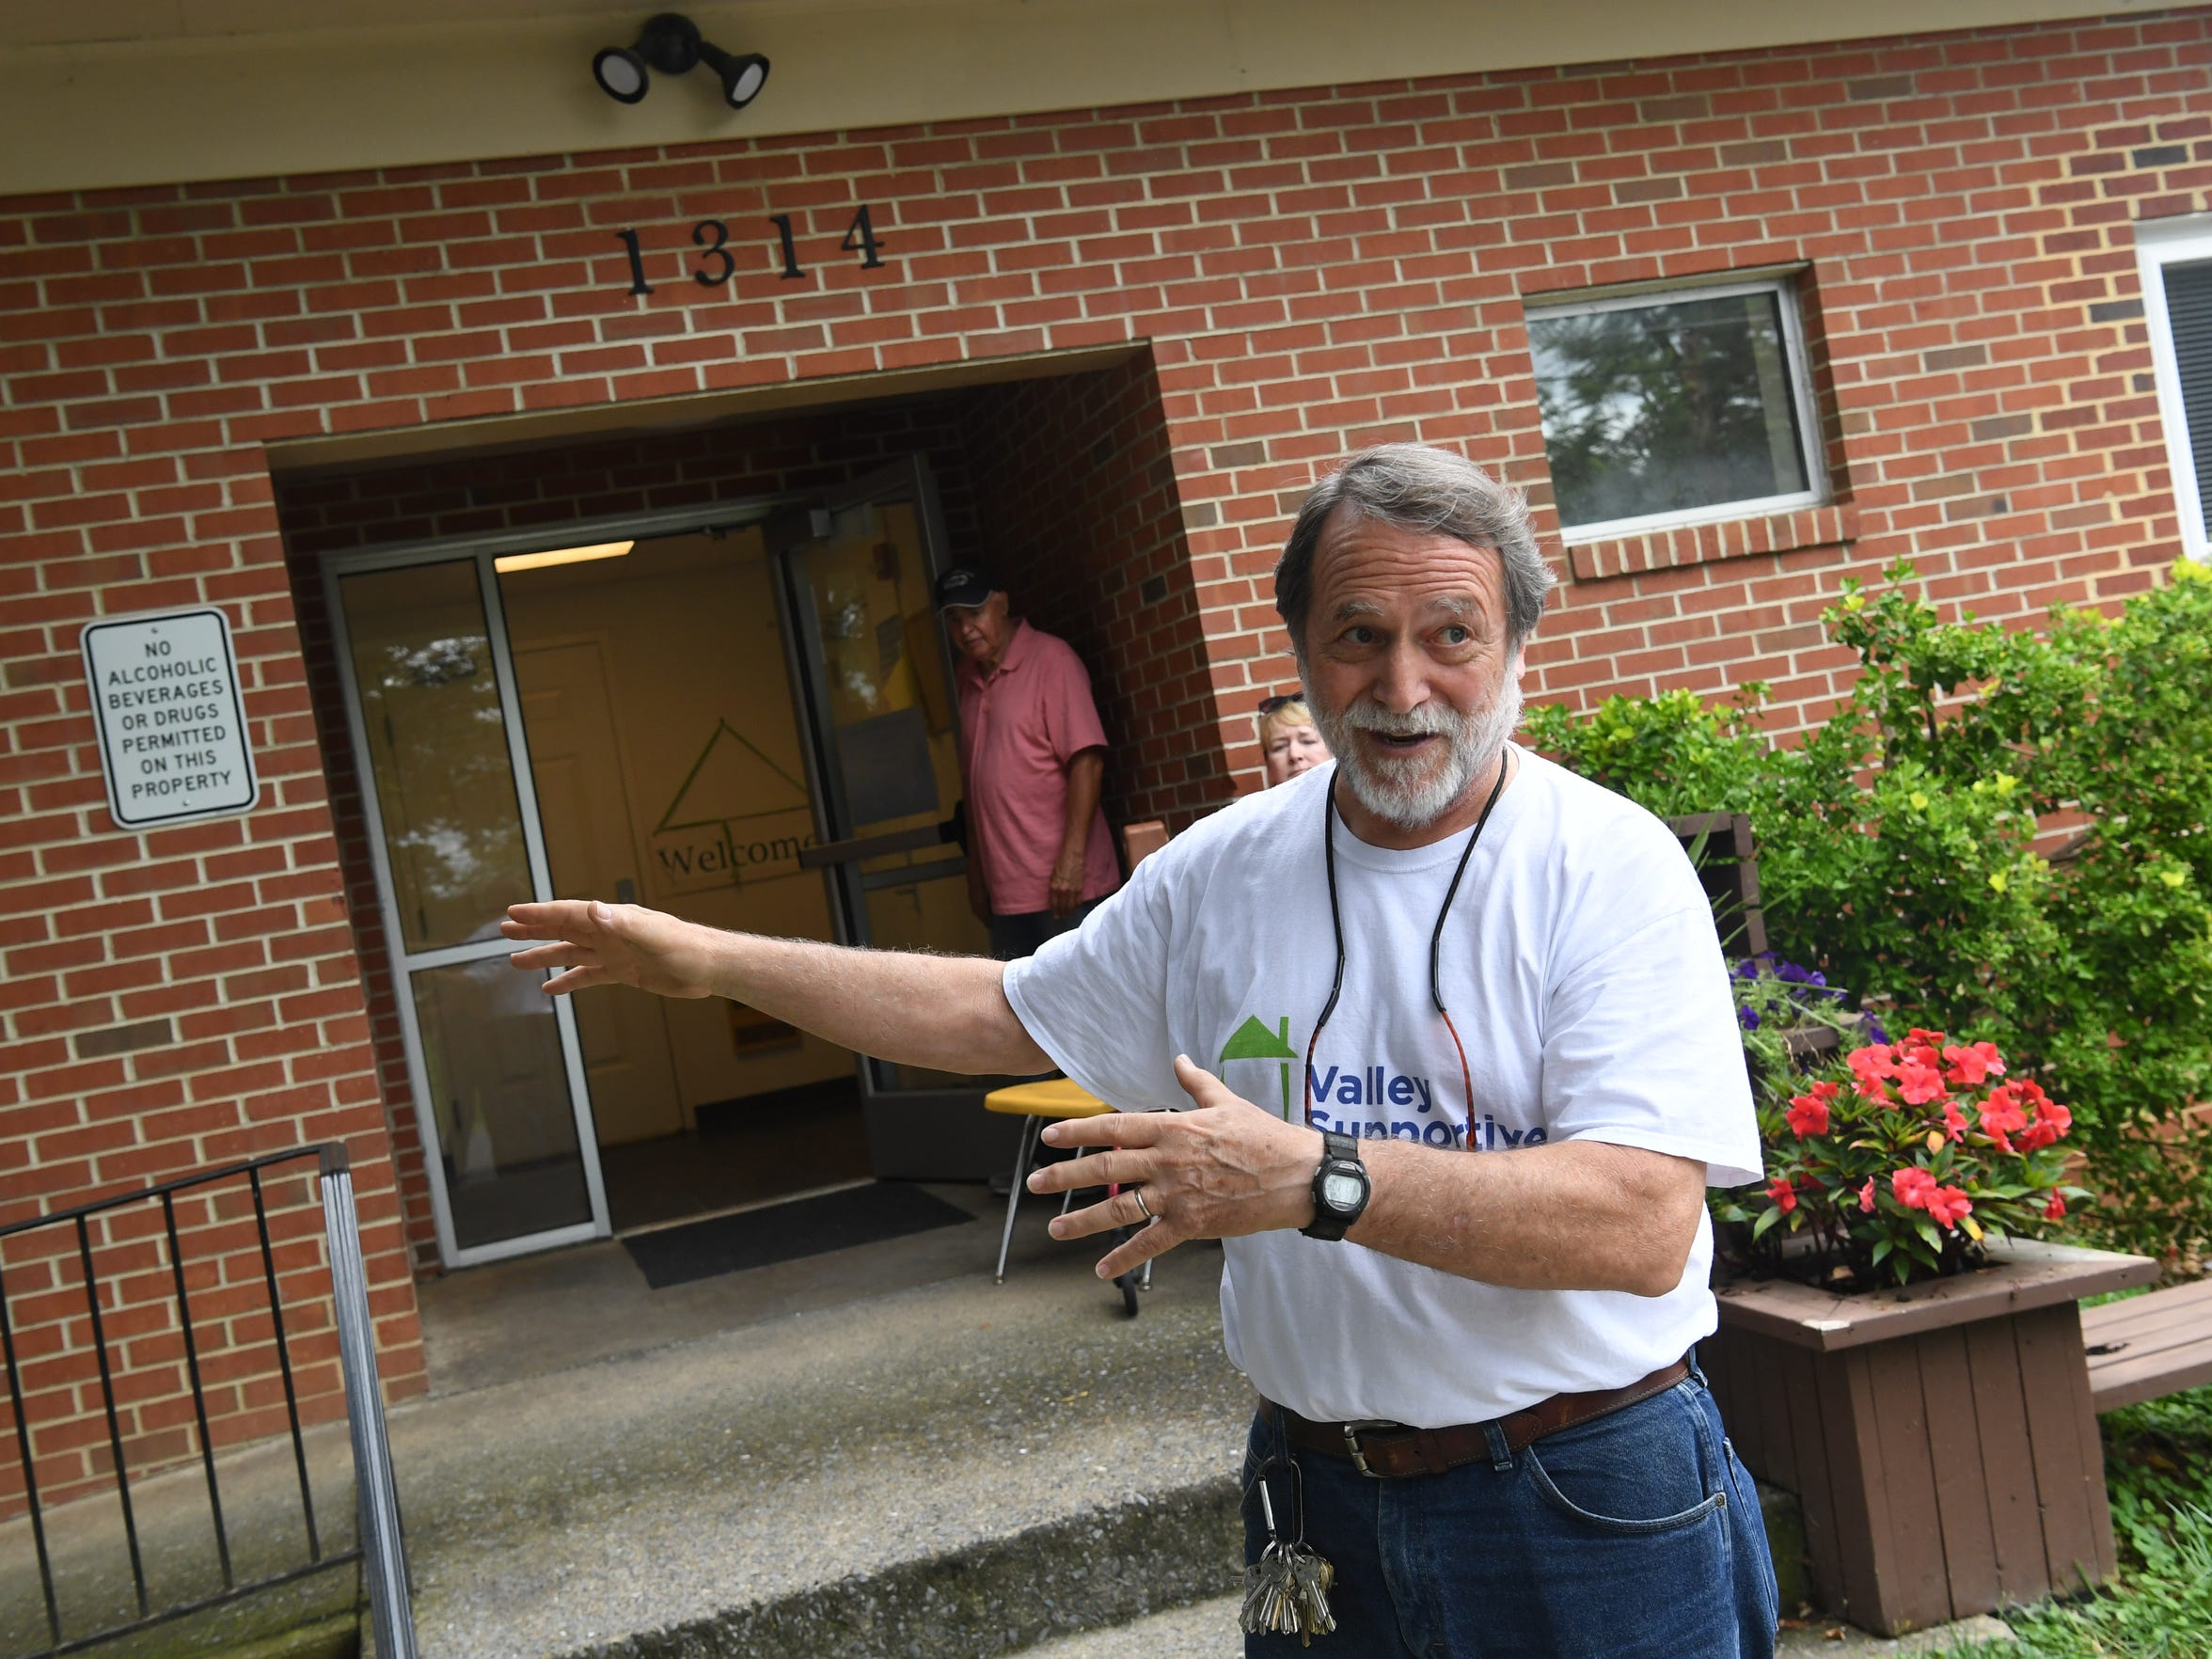 Clark Banta, executive director of Valley Supportive Housing, stands out front of the Johnson Street Apartments. He talks about new apartments being added to the location during an interview in Staunton on Friday, August 3, 2018.